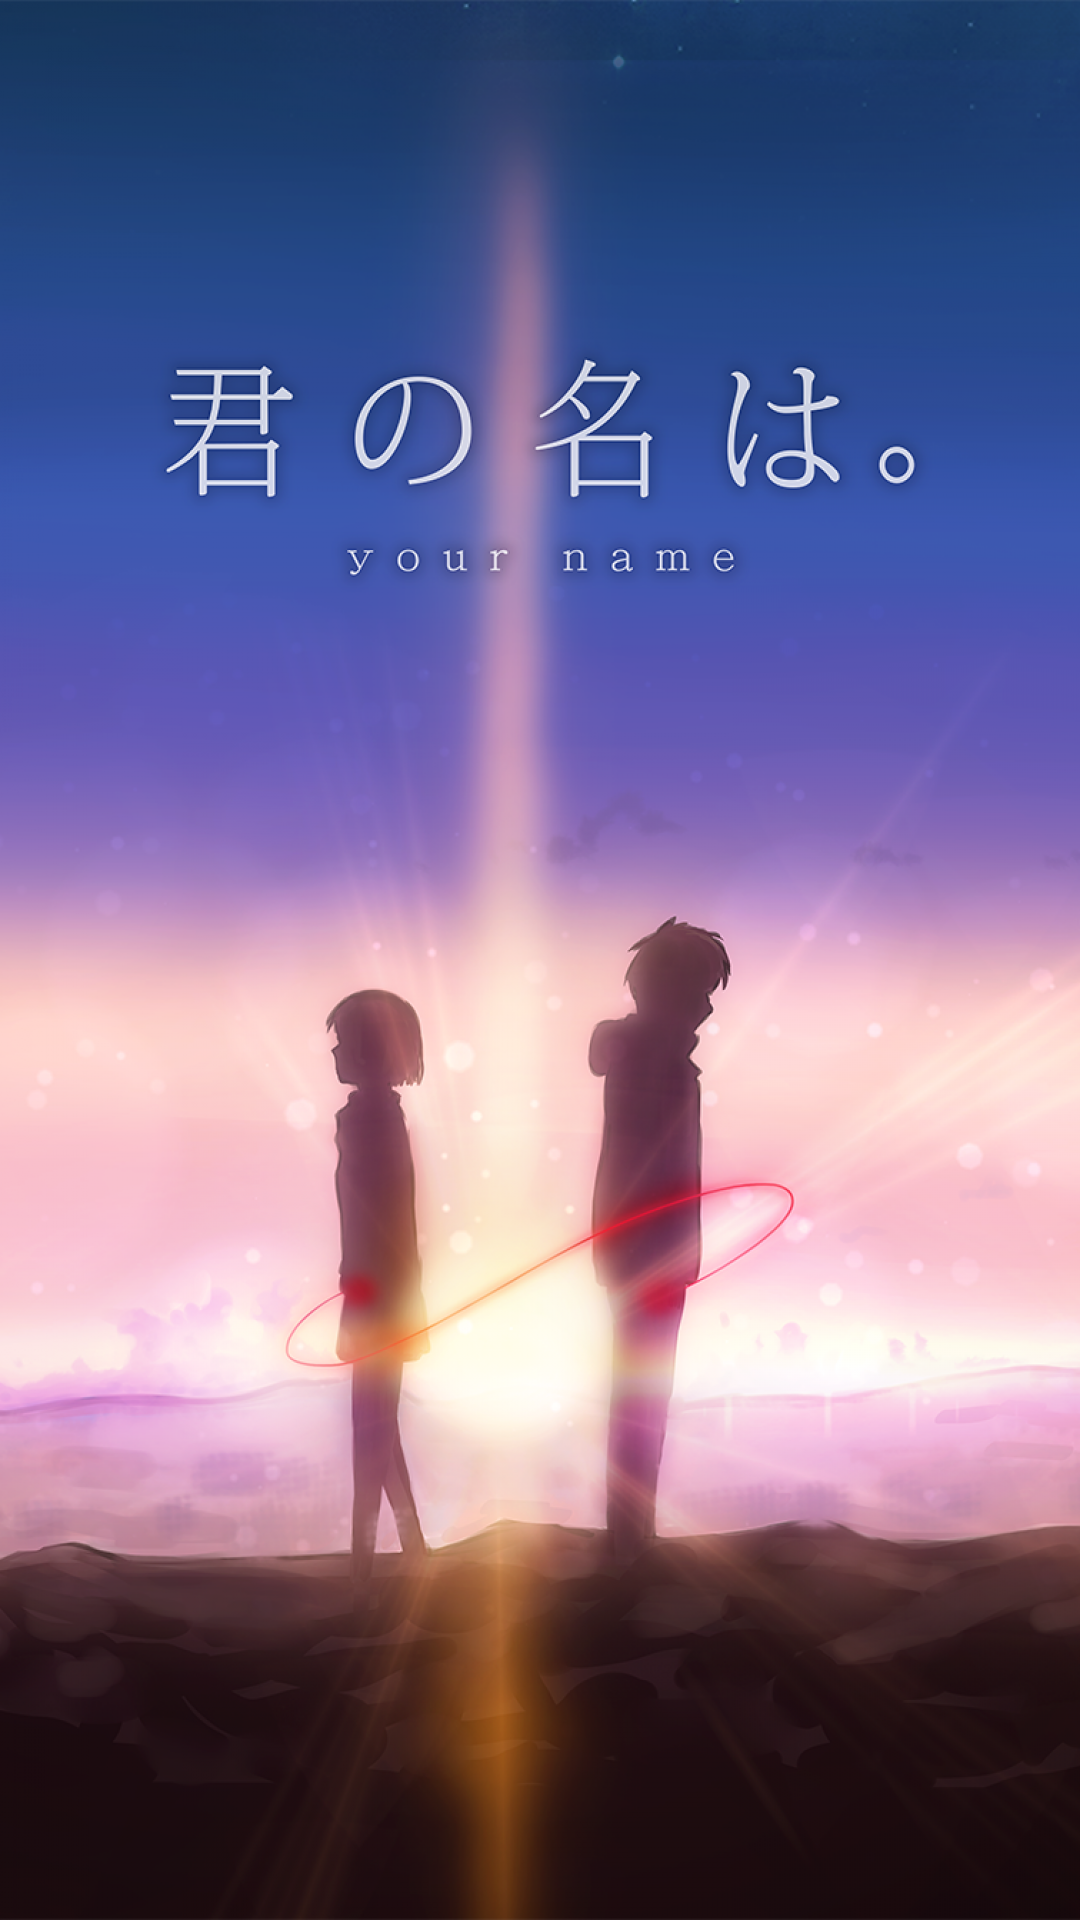 Pin By Cloudyview On Ignate In 2020 Your Name Wallpaper Kimi No Na Wa Wallpaper Kimi No Na Wa